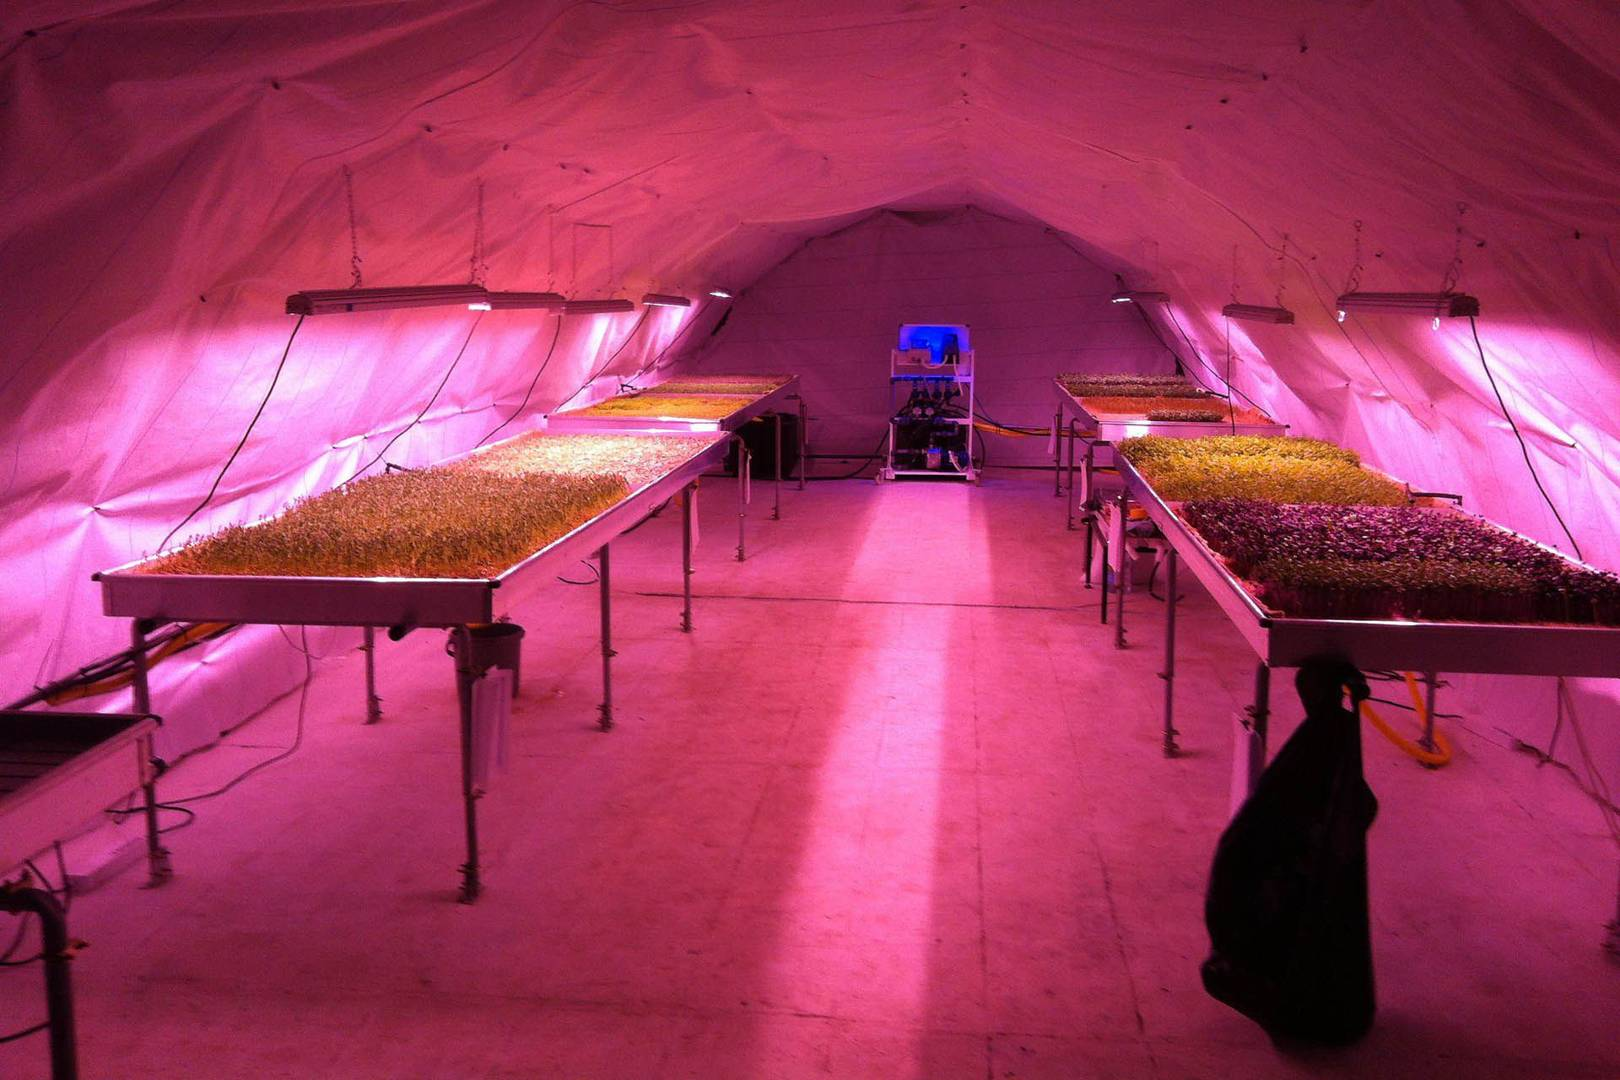 Vast Underground Bomb Shelter Reappropriated By Urban Farmers Wired Uk Running Electrical Wire